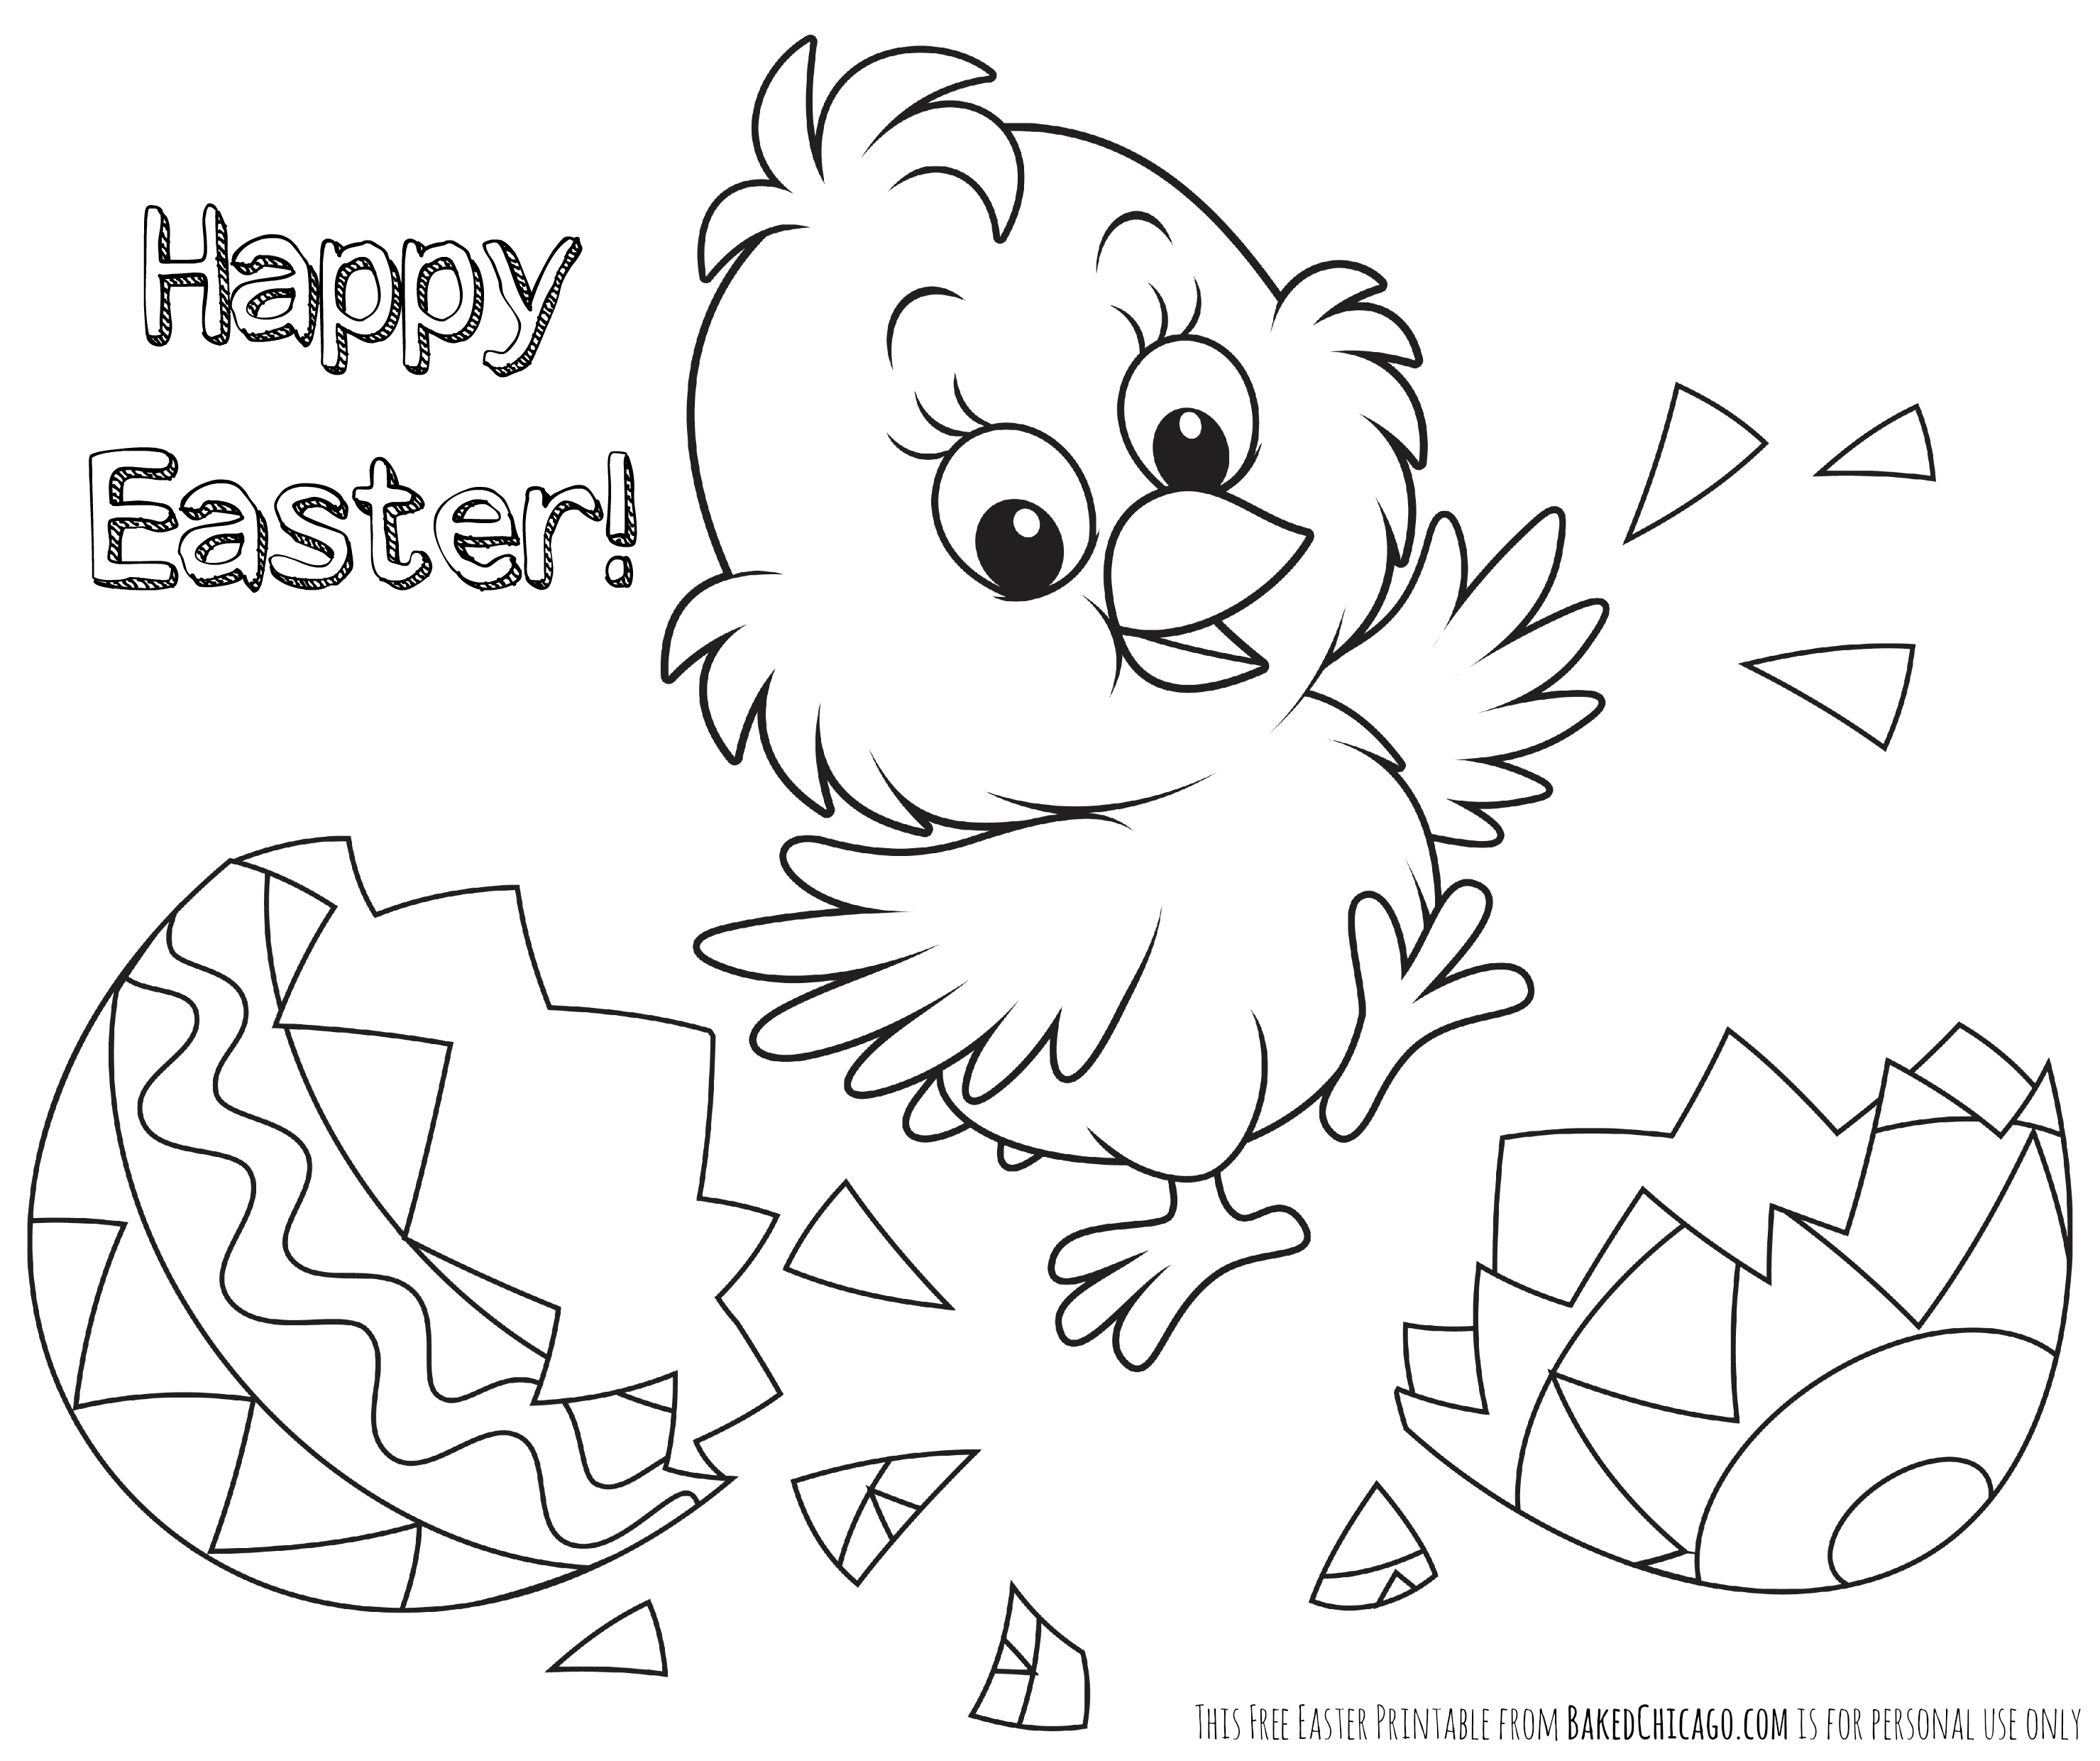 Coloring Pages : Easter Coloring Pages Printable Free Sheets Best Of - Free Printable Easter Drawings